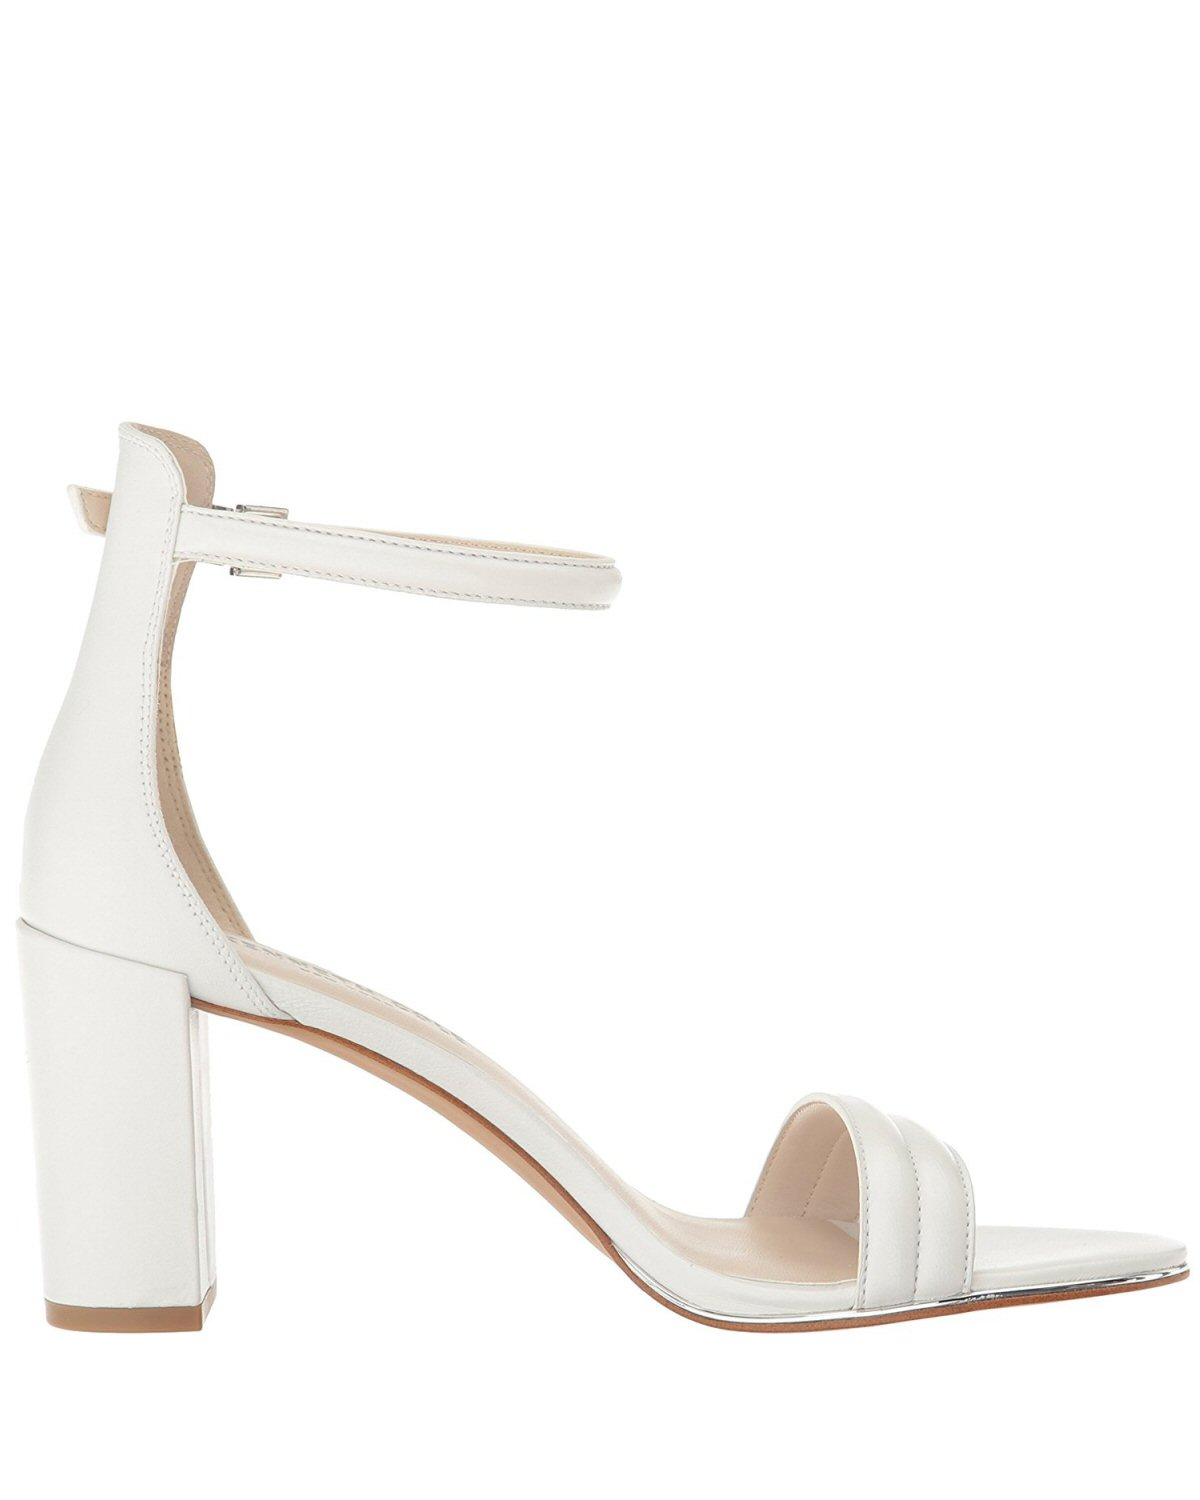 872a0cb8afb ... Picture 3 of 5  Picture 4 of 5. 2. Kenneth Cole New York Womens Lex  Block-Heel Sandals White 11 M